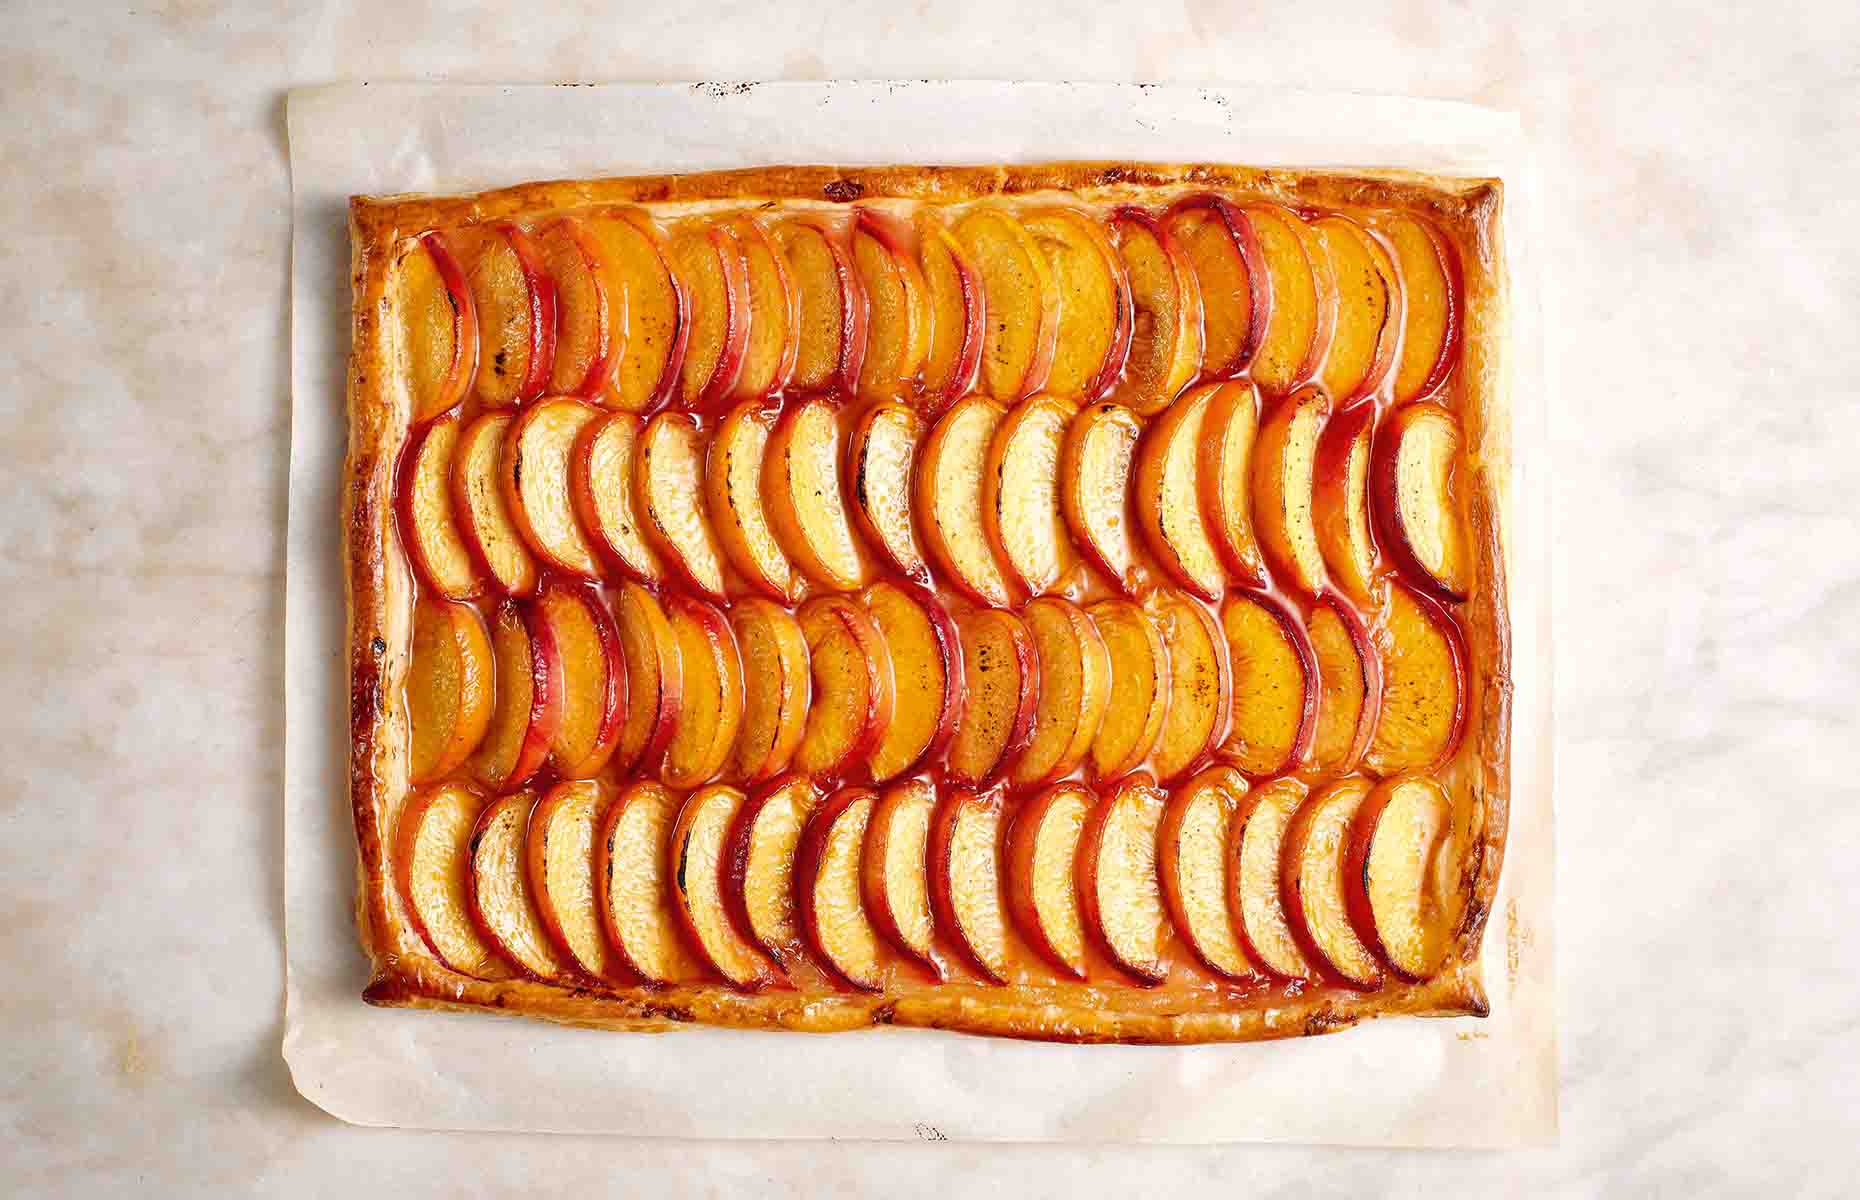 Peach puff tart (Image: The Ice Kitchen/HarperCollins)